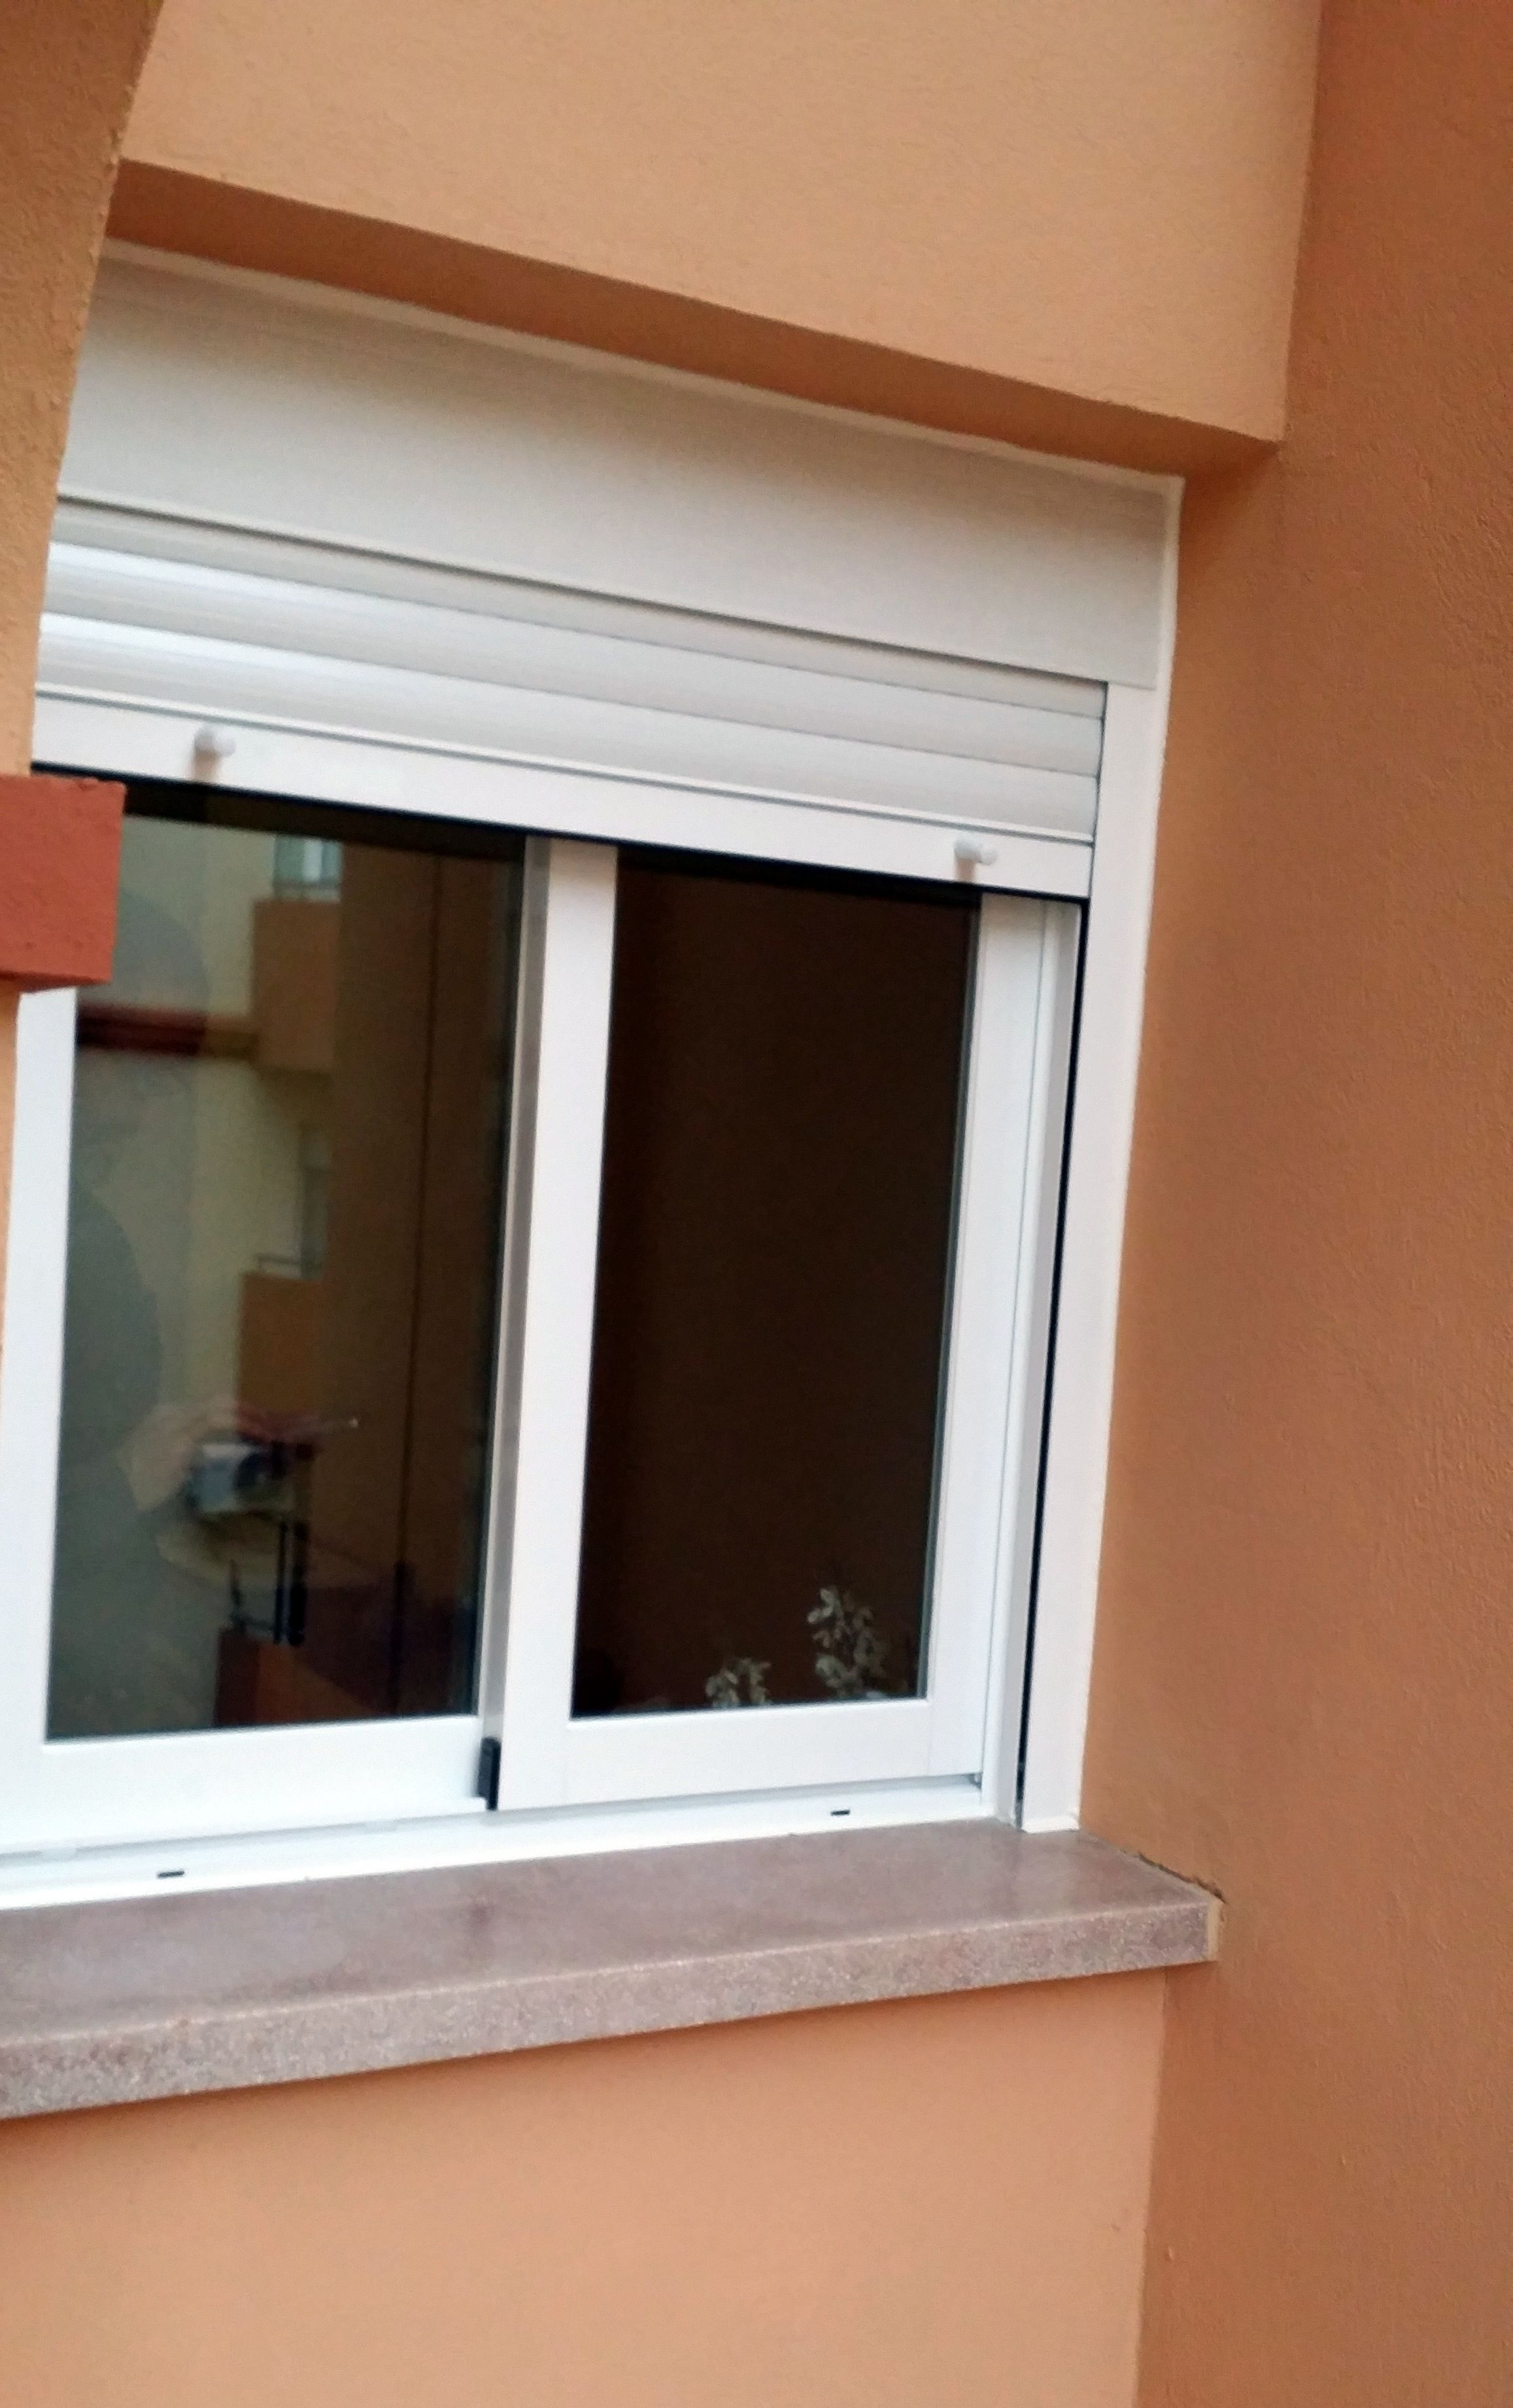 Ventana de aluminio con persiana color blanco proyectos for Persianas de fachada simulador de color